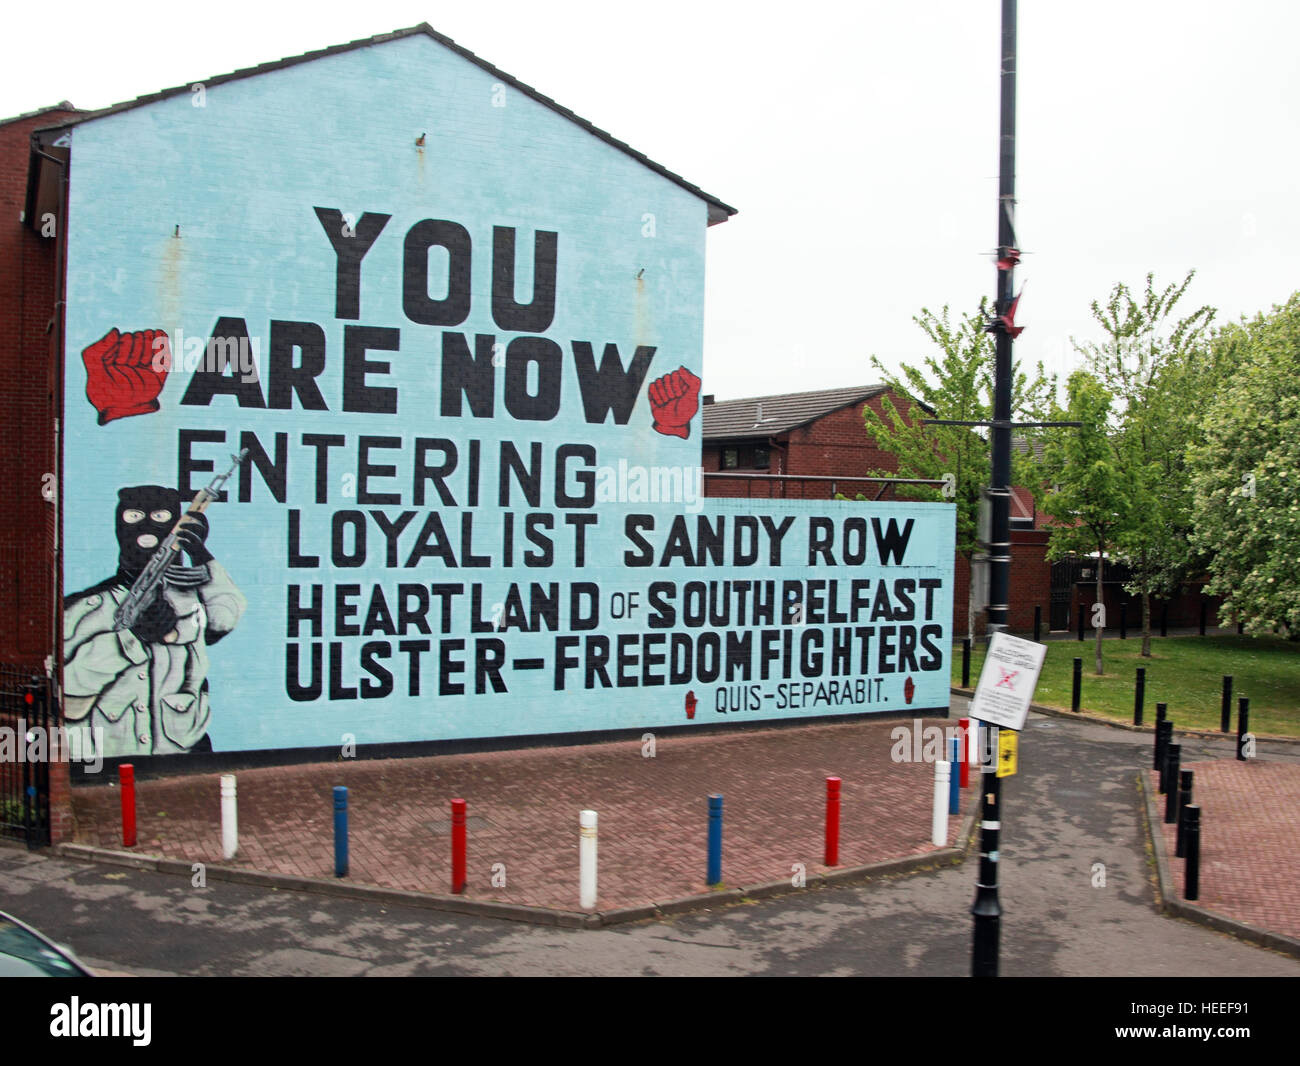 Mural,art,British,Union,wall,walls,gable end,gable,end,Northern,Irish,Republican,violence,para,military,paramilitary,fallen,Martyrs,martyr,street,rd,road,painting,painted,symbolism,Loyalist,culture,history,community,SandyRow,UFF,You,are,now,entering,Loyalist,Sandy,Row,Heartland,of,South,Belfast,GoTonySmith,@HotpixUK,Tony,Smith,UK,GB,Great,Britain,United,Kingdom,Irish,British,Ireland,problem,with,problem with,issue with,NI,Northern,Northern Ireland,Belfast,City,Centre,Art,Artists,the,troubles,The Troubles,Good Friday Agreement,Peace,honour,painting,wall,walls,tribute,republicanism,Fight,Justice,West,Beal,feirste,martyrs,social,tour,tourism,tourists,urban,six,counties,6,backdrop,county,Antrim,Shankill,Rd,Road,Royal,Royalist,Loyalist,Belfast streets,Buy Pictures of,Buy Images Of,Images of,Stock Images,Tony Smith,United Kingdom,Great Britain,British Isles,Irish History,Ireland History,Northern Ireland History